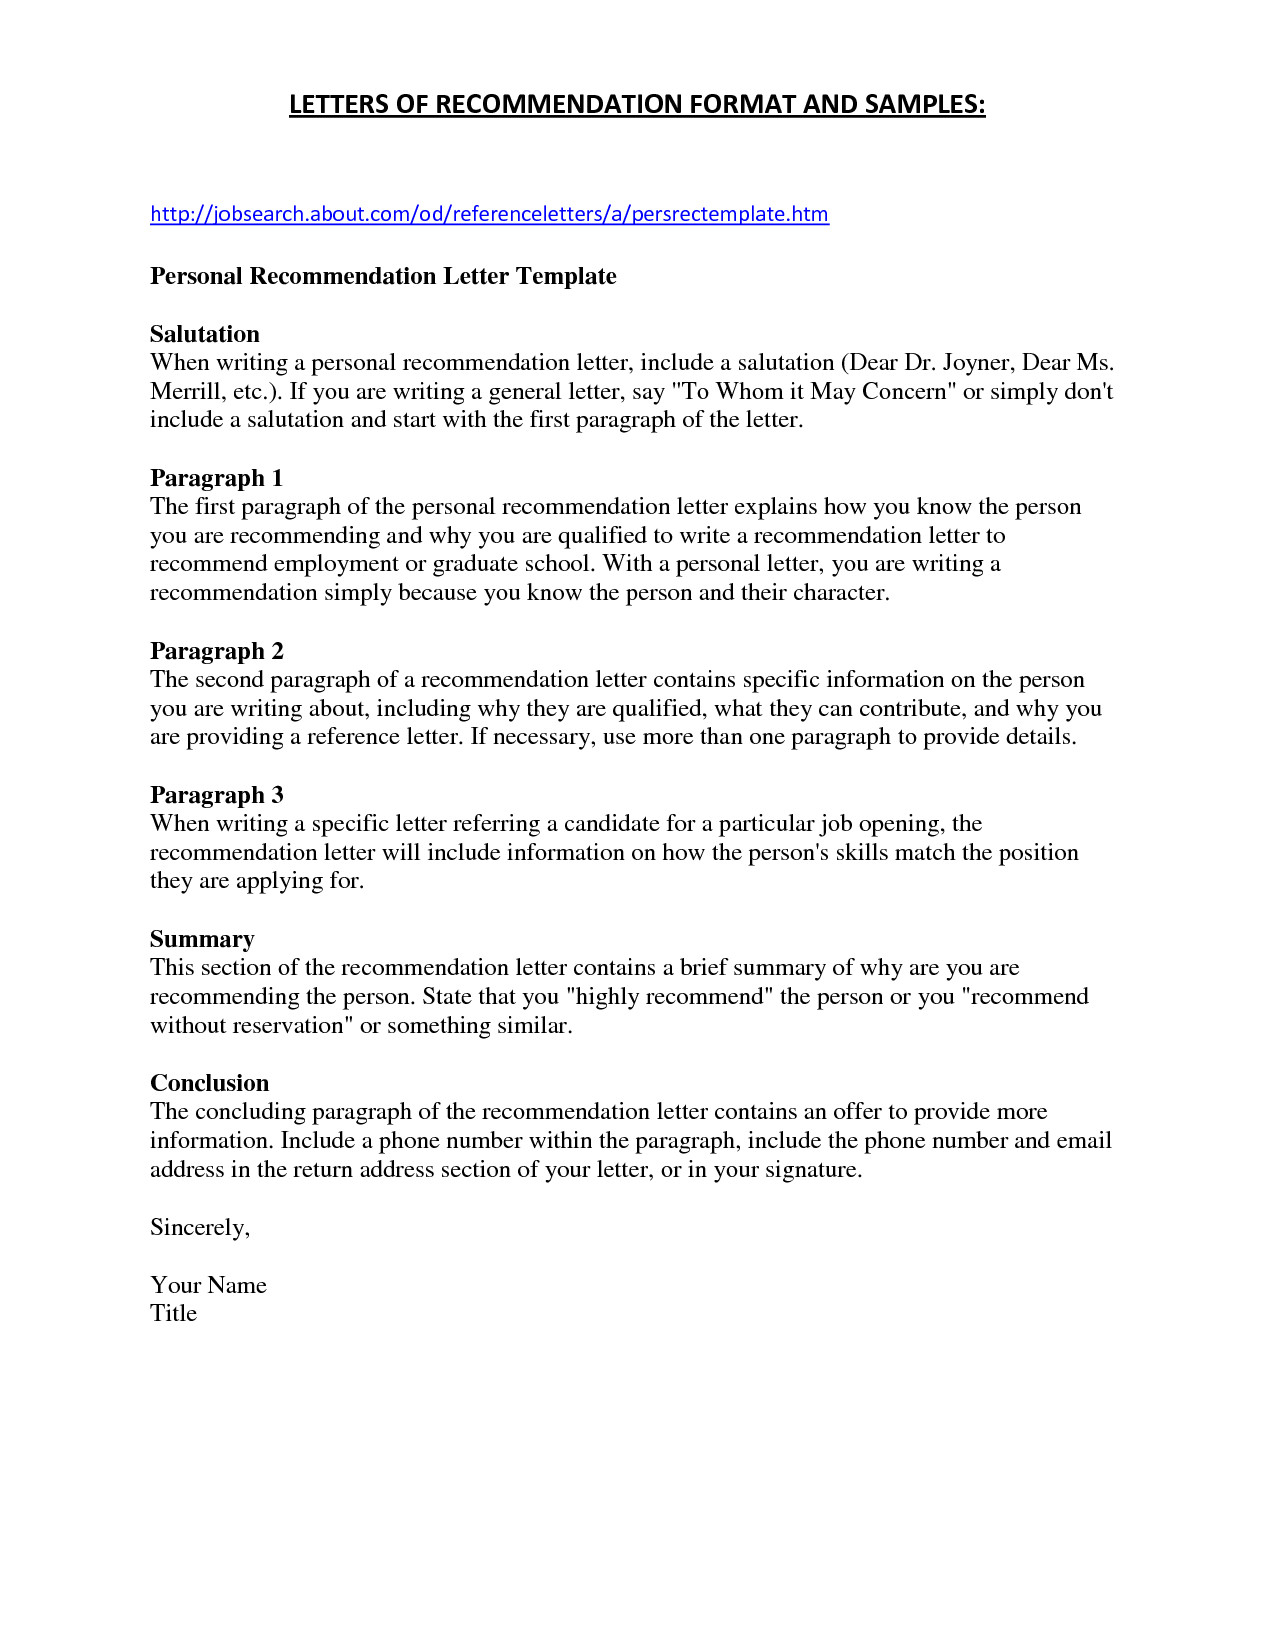 How to Write A Letter to A soldier Template - Sample Letters to sol Rs Beautiful Nursing School Letter Re